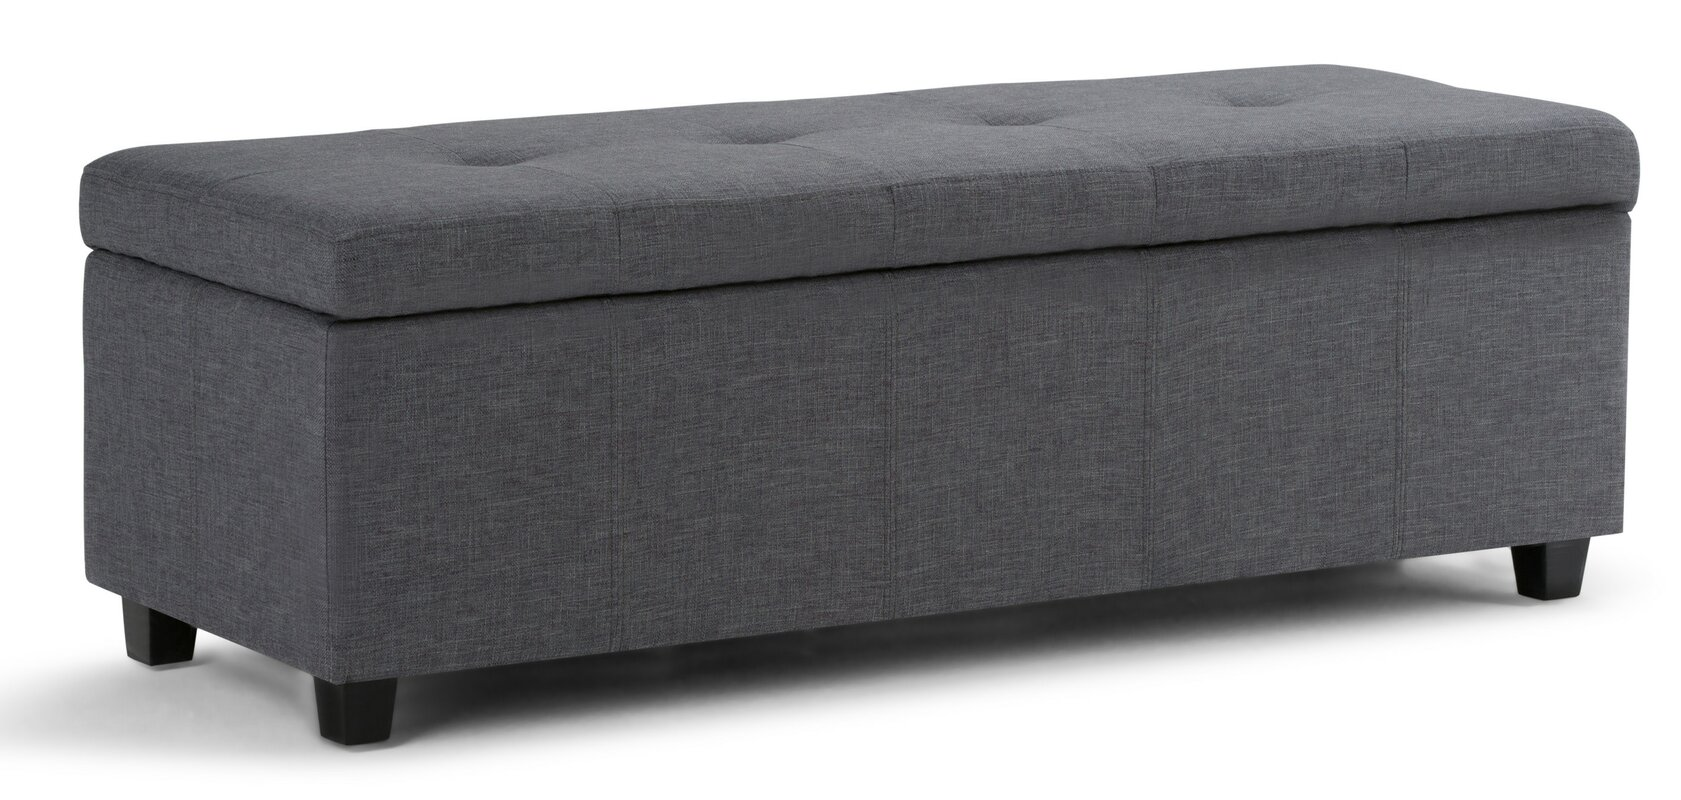 simpli home castleford upholstered storage bench  reviews  wayfair - defaultname